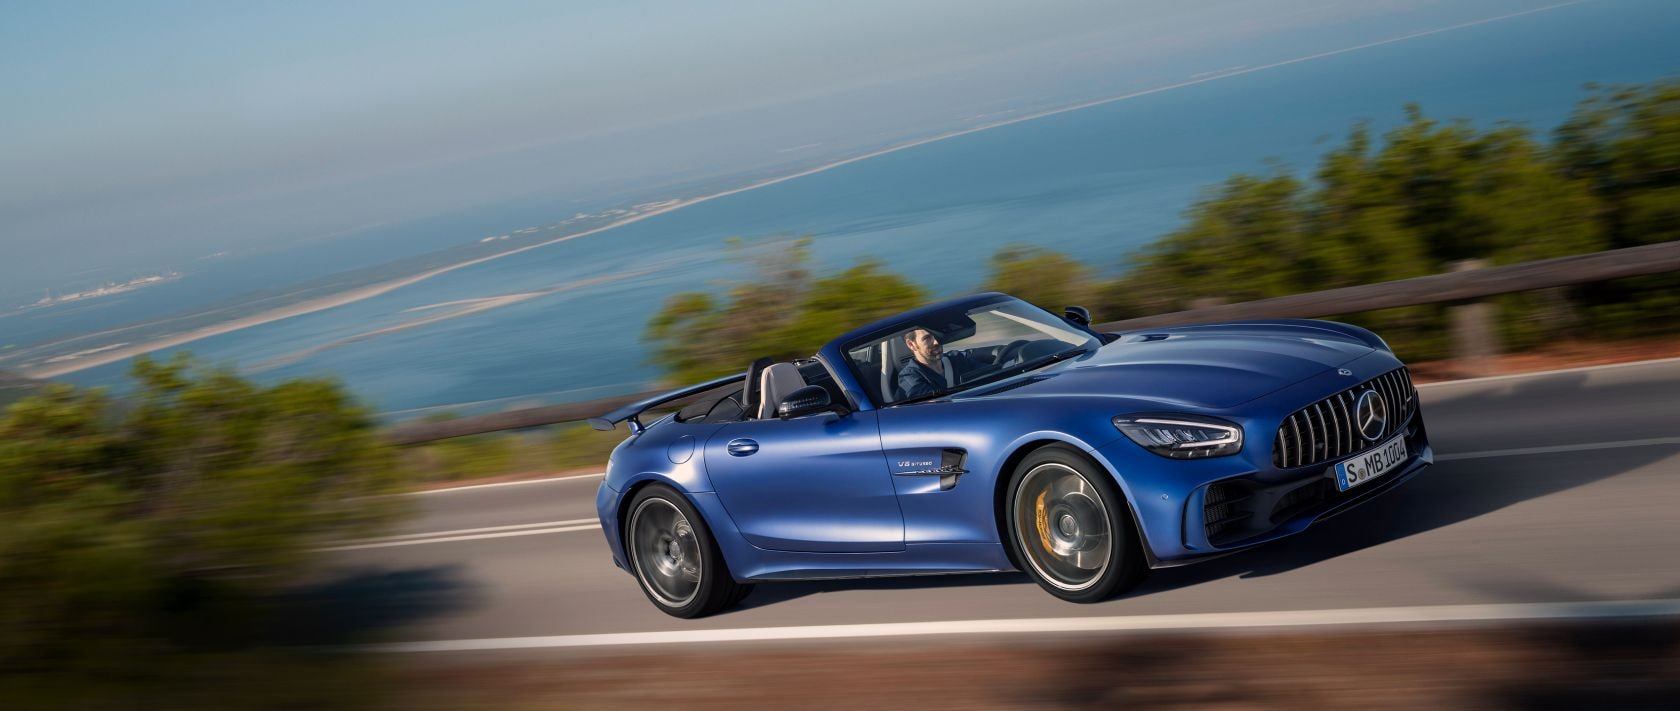 The new Mercedes-AMG GT R Roadster (R 190) in designo brilliant blue magno in side view on a coastal road.